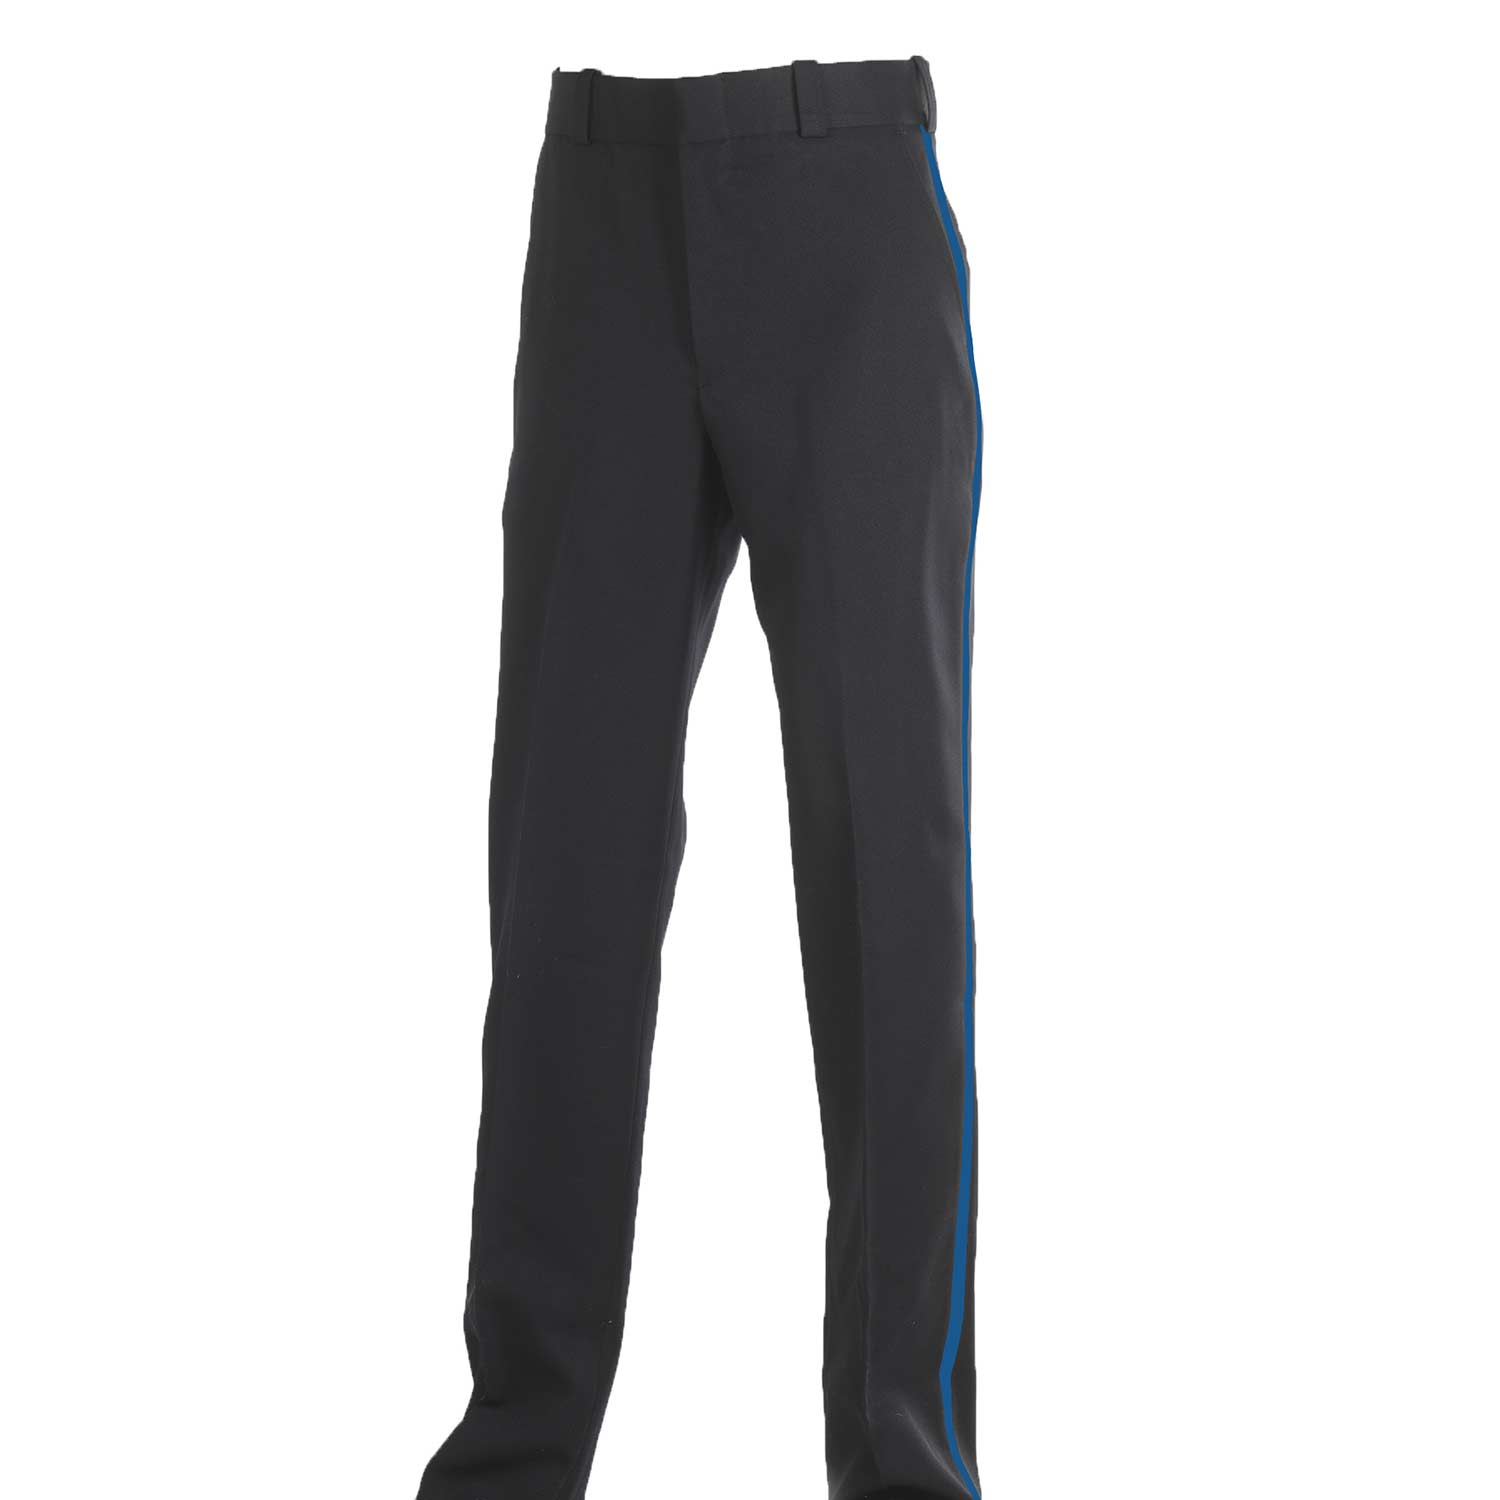 Flying Cross Command Pant with Royal Blue Stripe